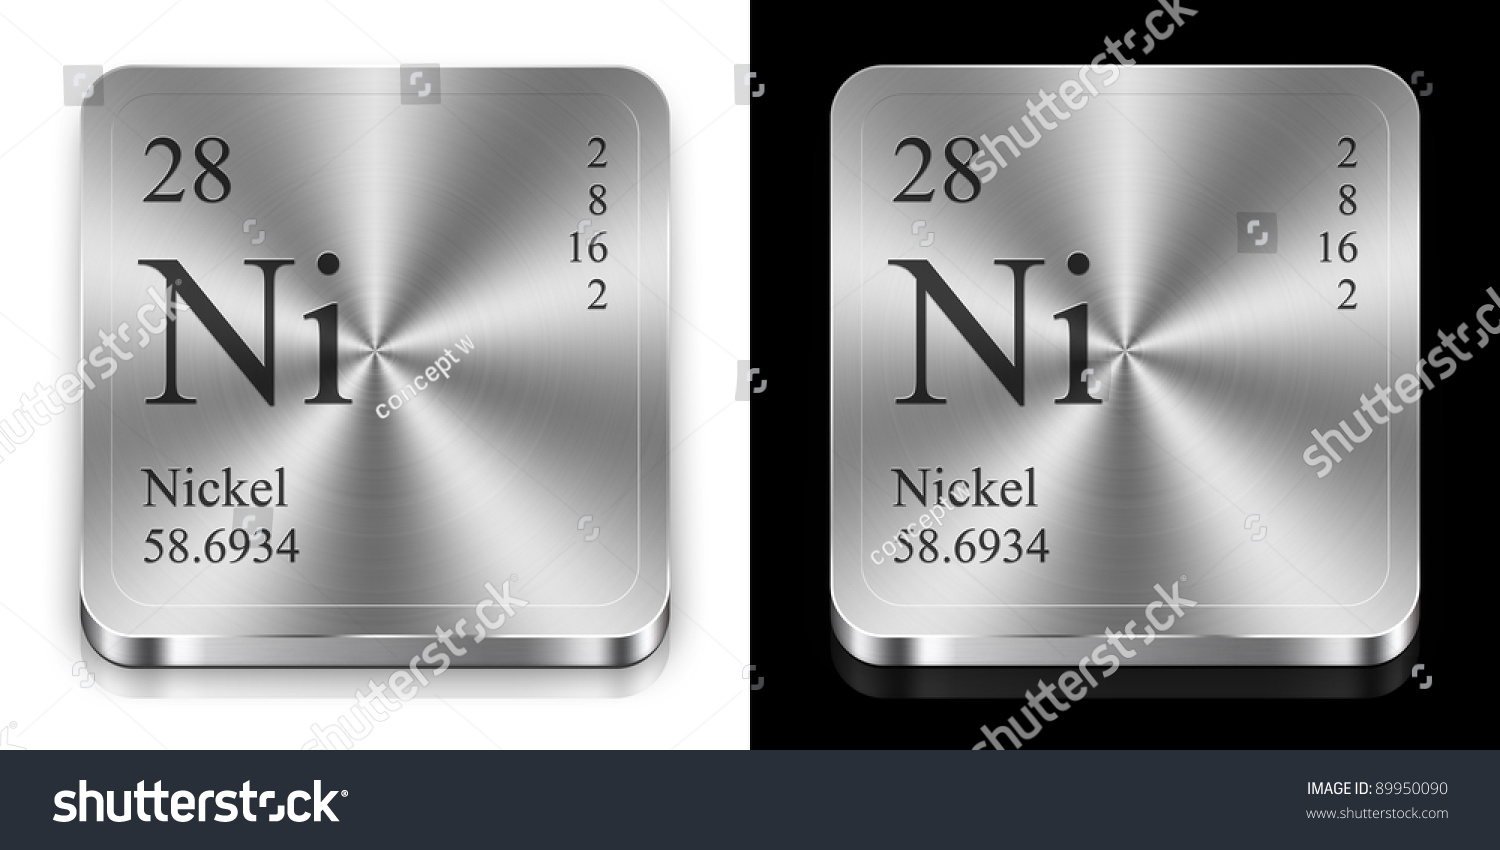 pics for gt nickel periodic table symbol